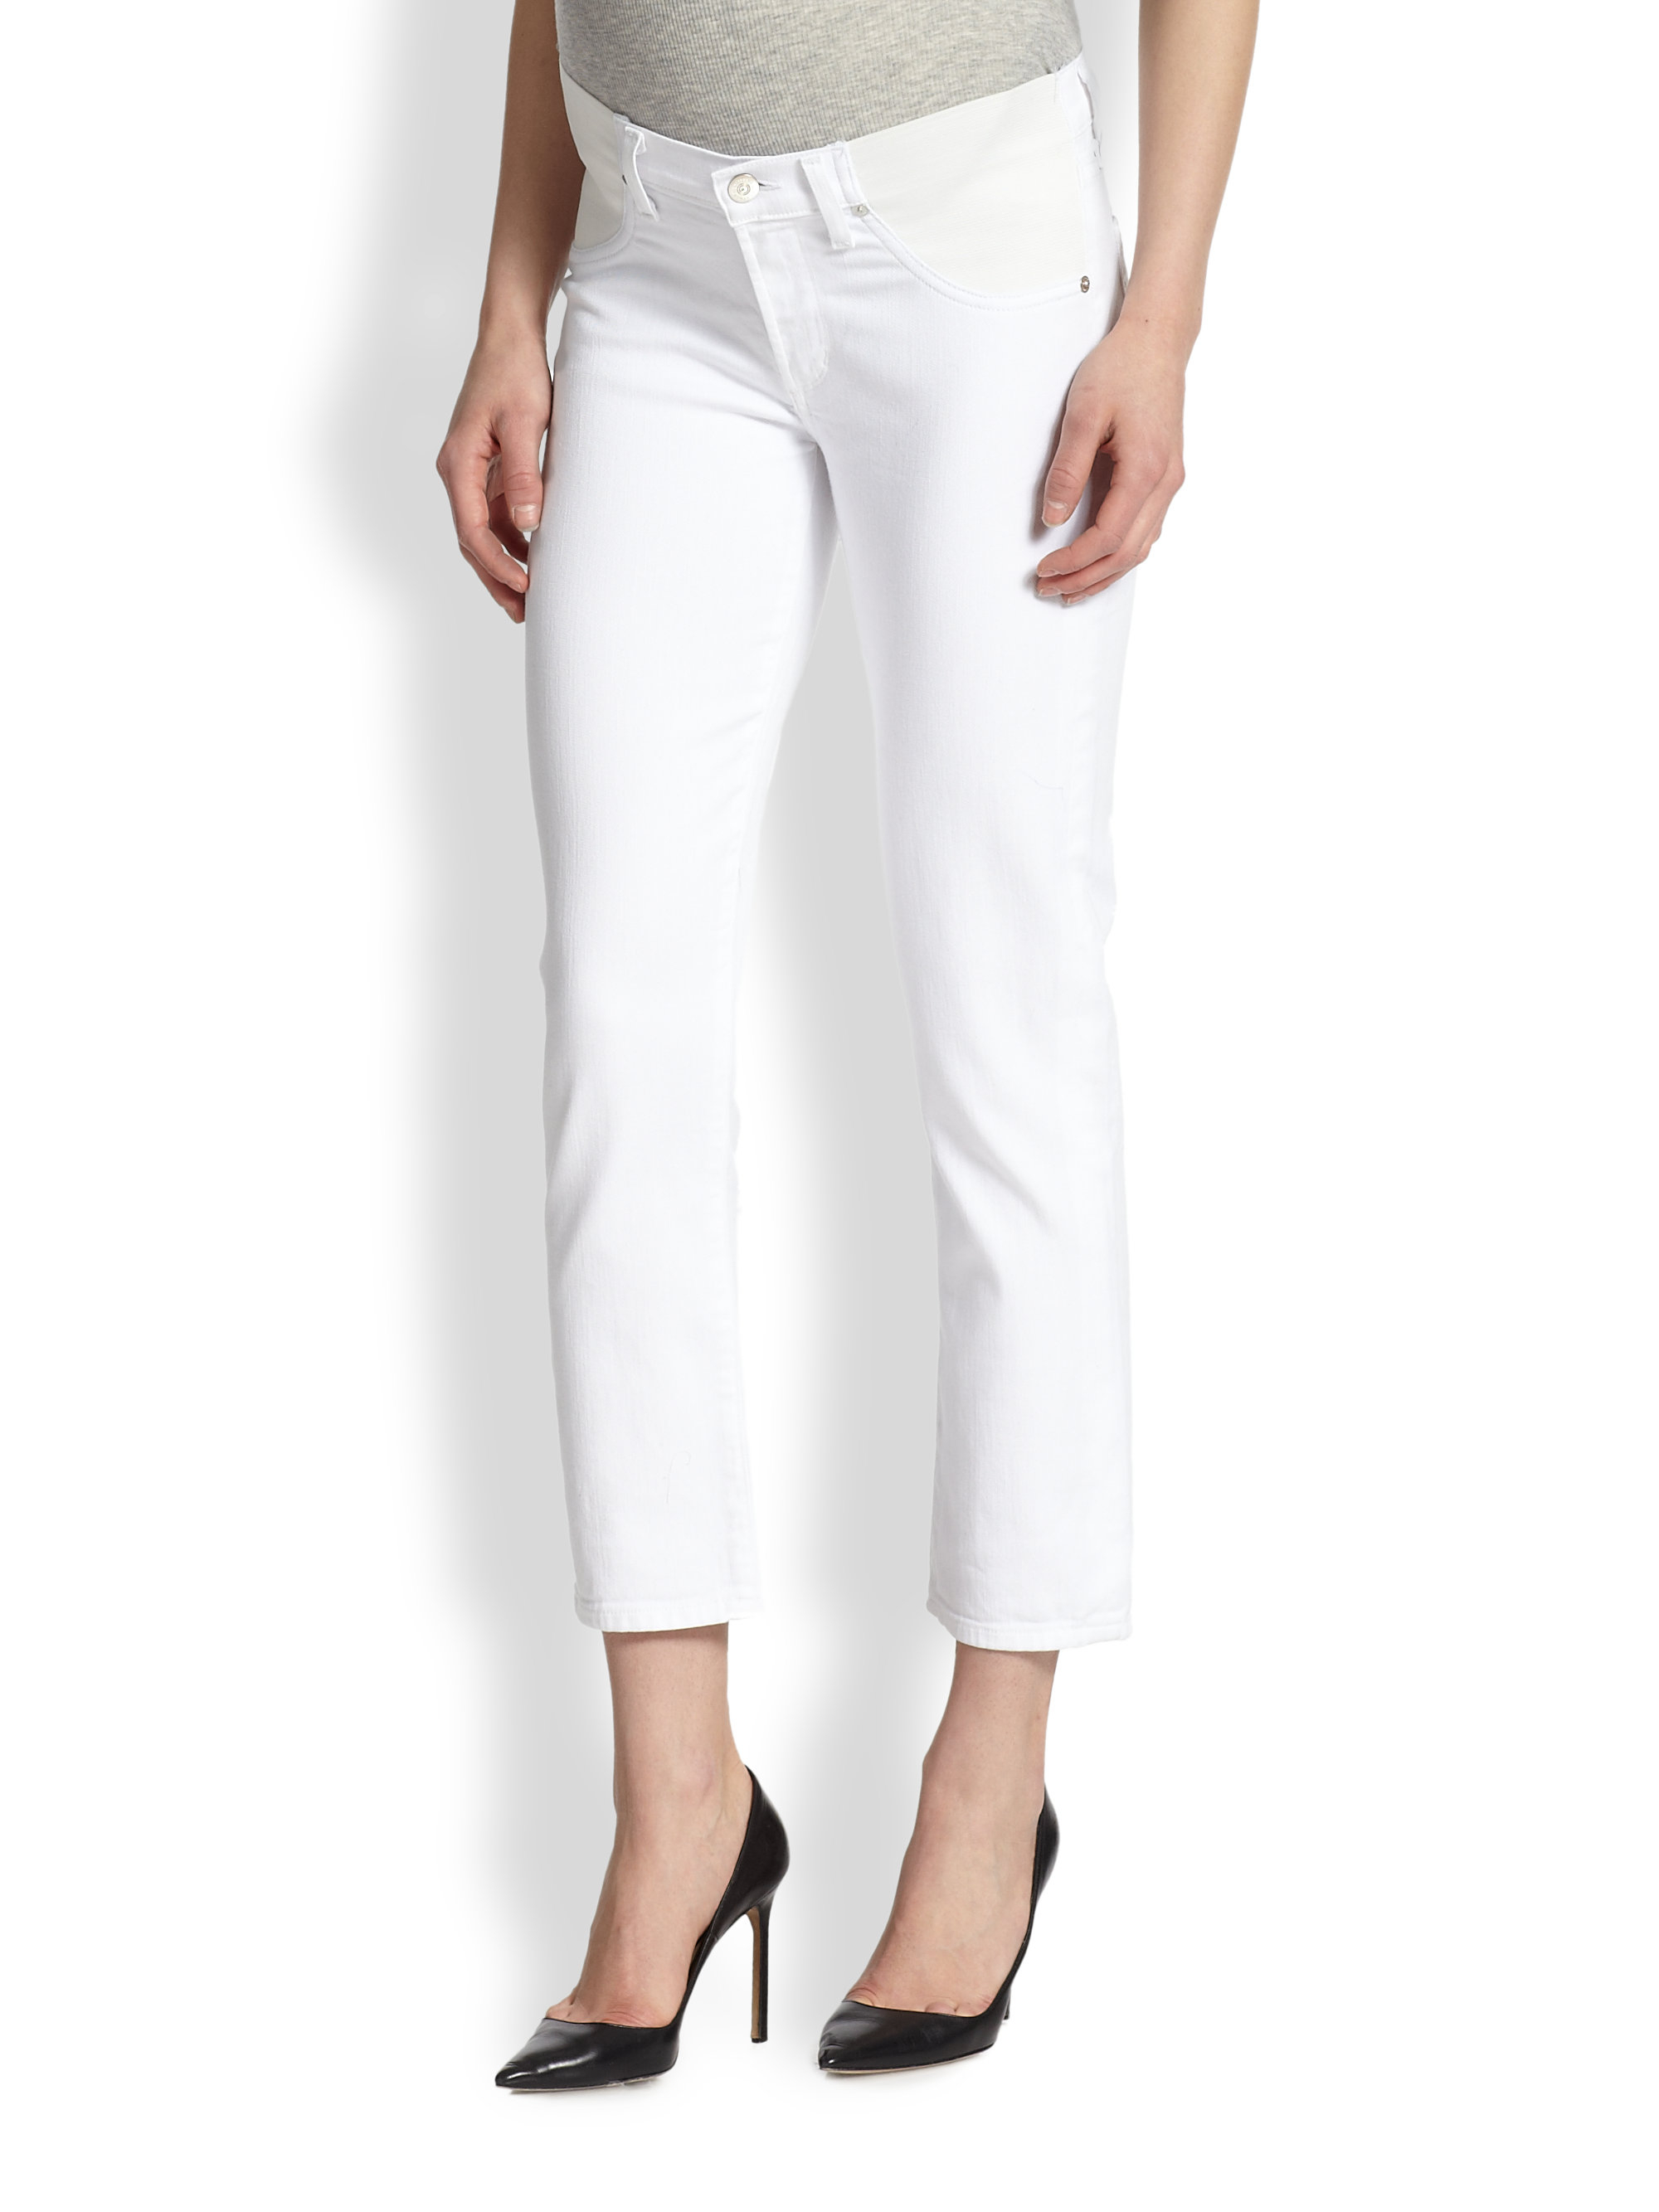 Citizens of humanity Phoebe Skinny Maternity Jeans in White | Lyst